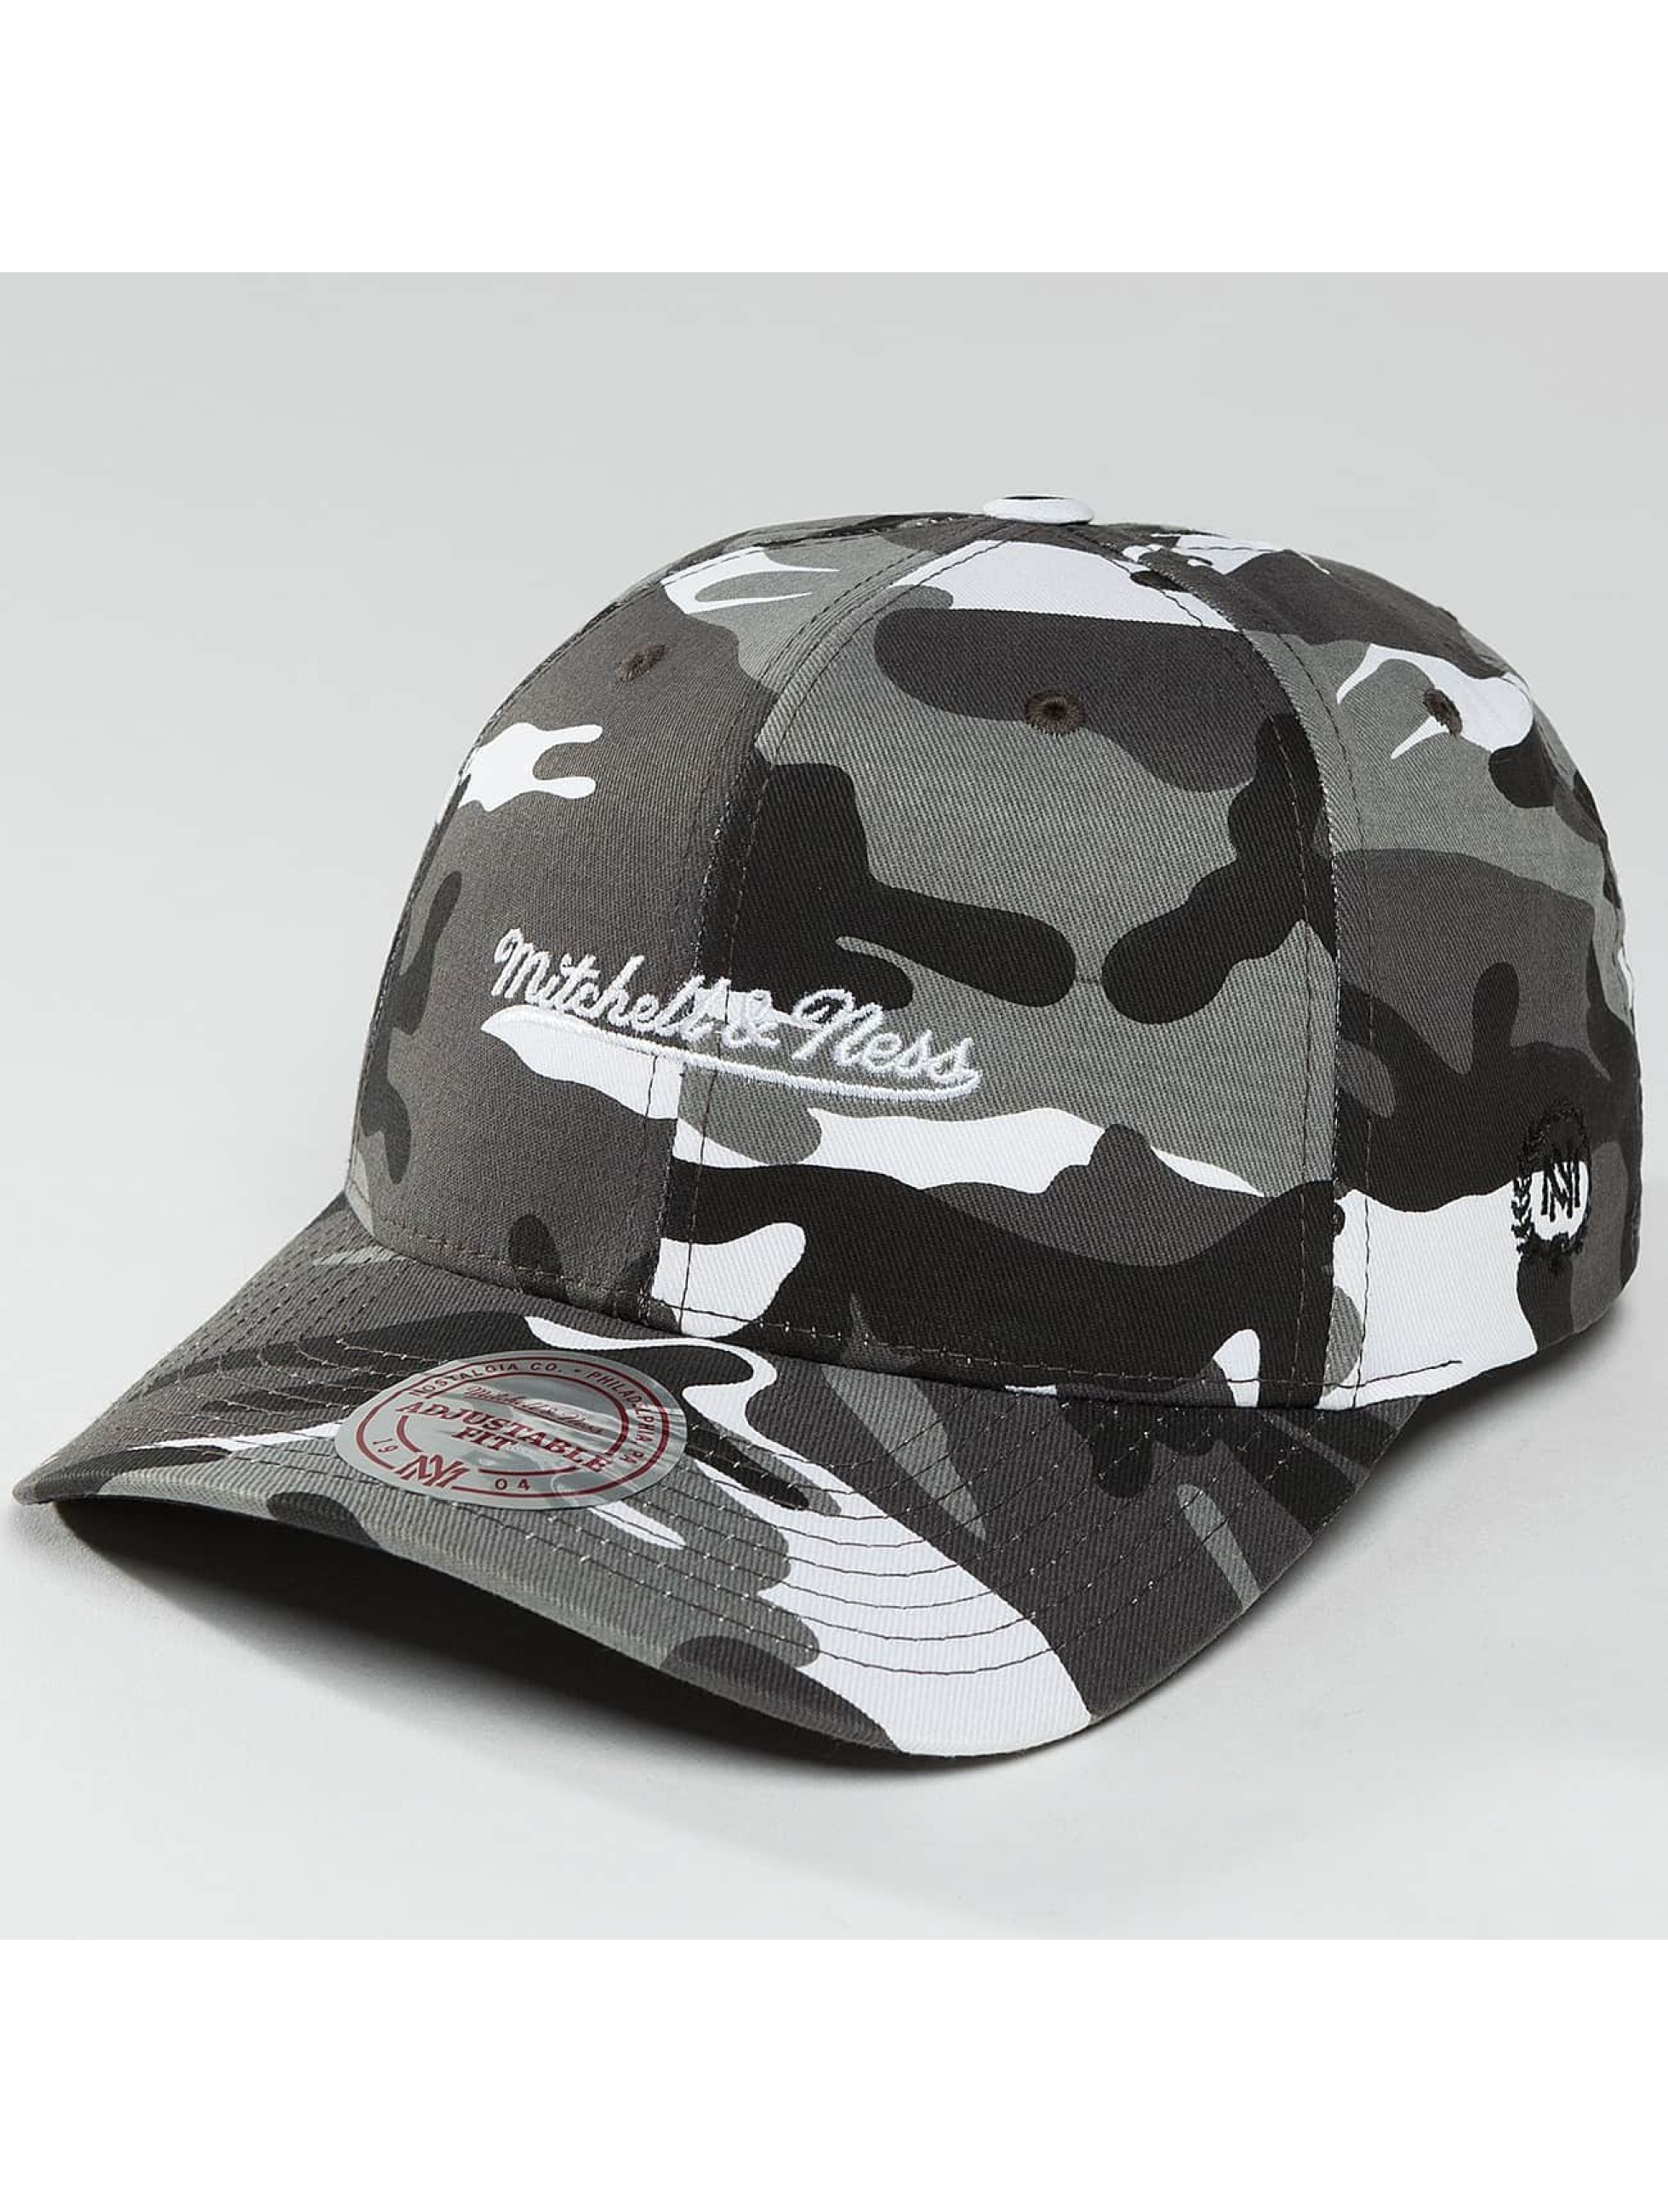 Mitchell & Ness Snapback Caps 110 The Camo & Suede camouflage